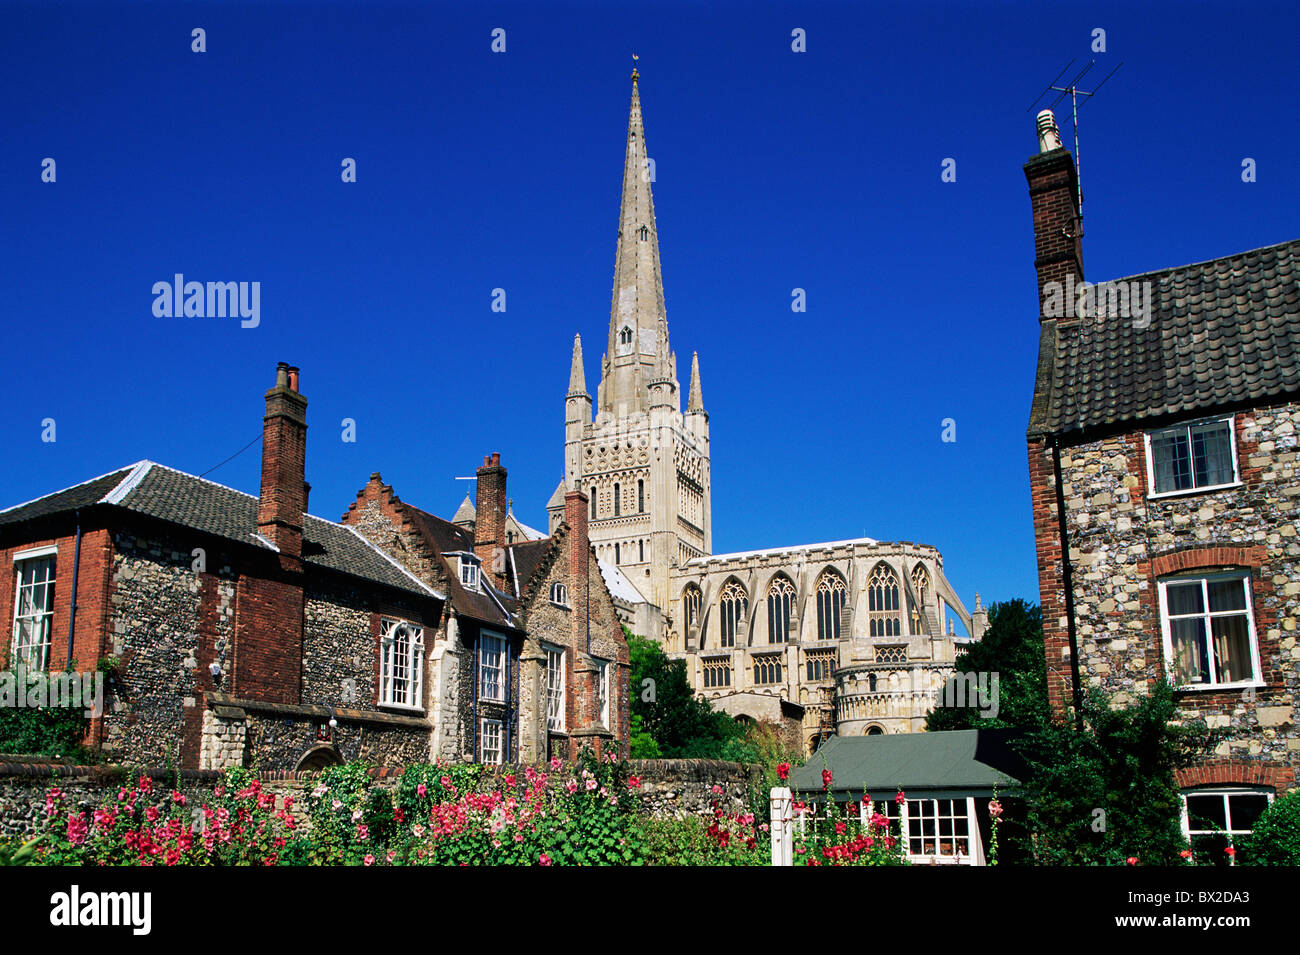 Britain British Isles Built 1096 Cathedral Christianity East Anglia England Great Britain Europe Norfolk N - Stock Image